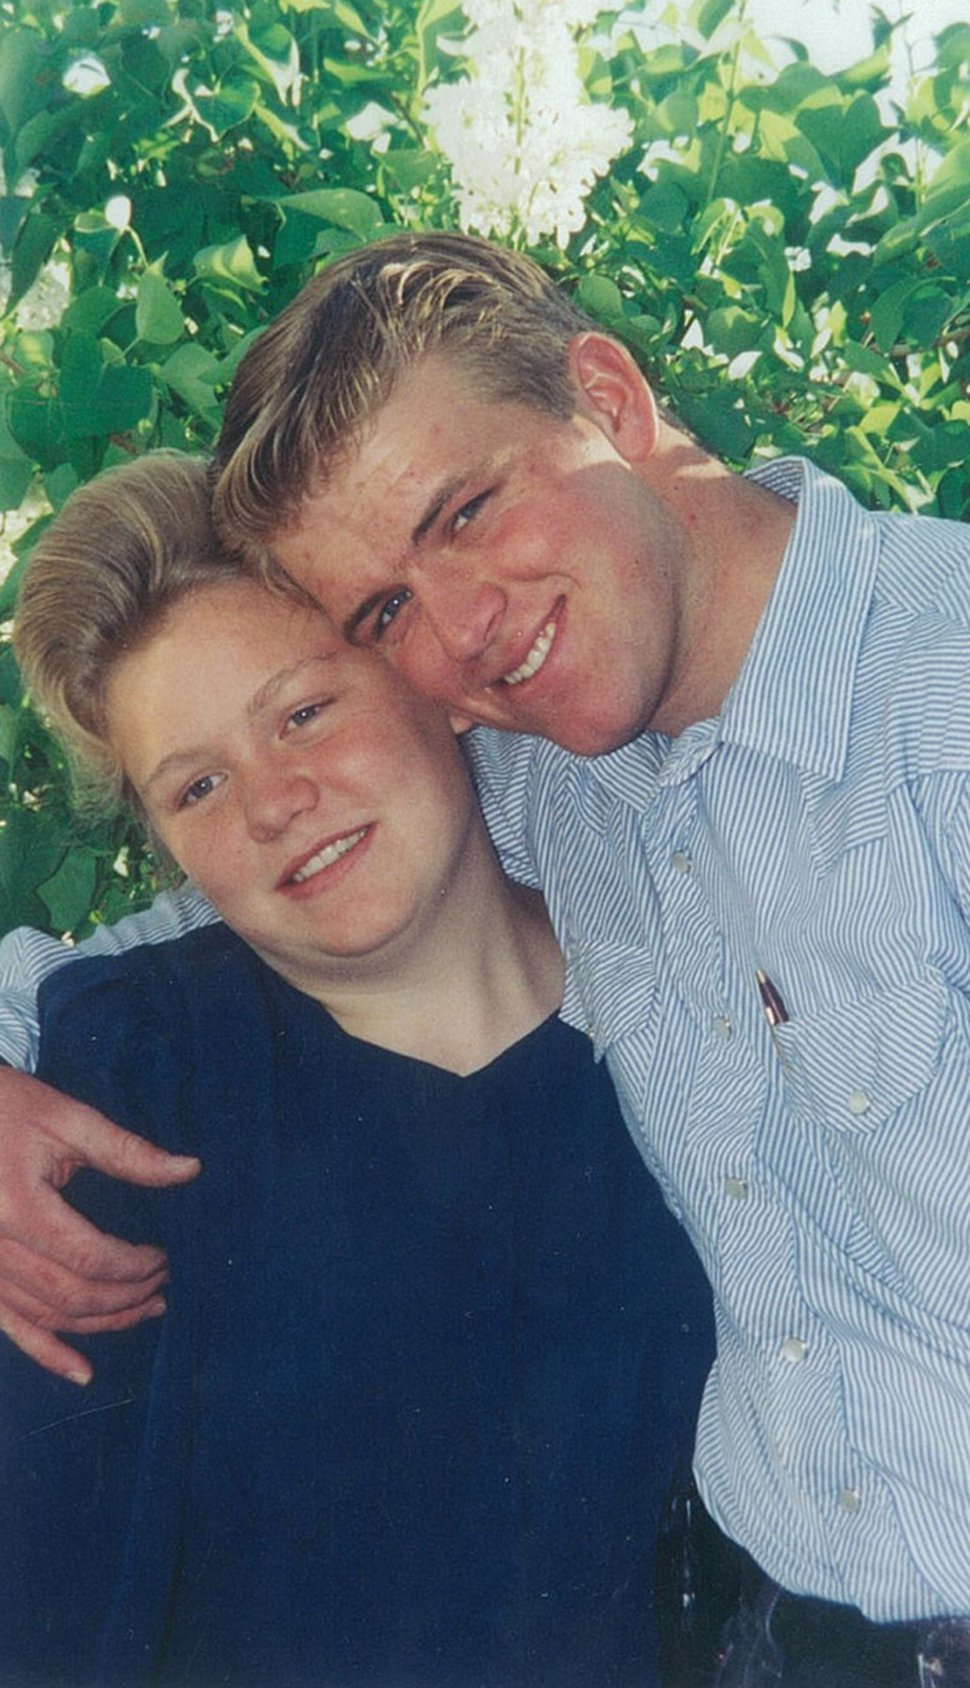 Elissa Wall, then 14, and Allen Steed, then 19, the day after they were married by polygamous sect leader Warren S. Jeffs. This photo was used as evidence in Jeffs' rape as an accomplice trial. Elissa Wall